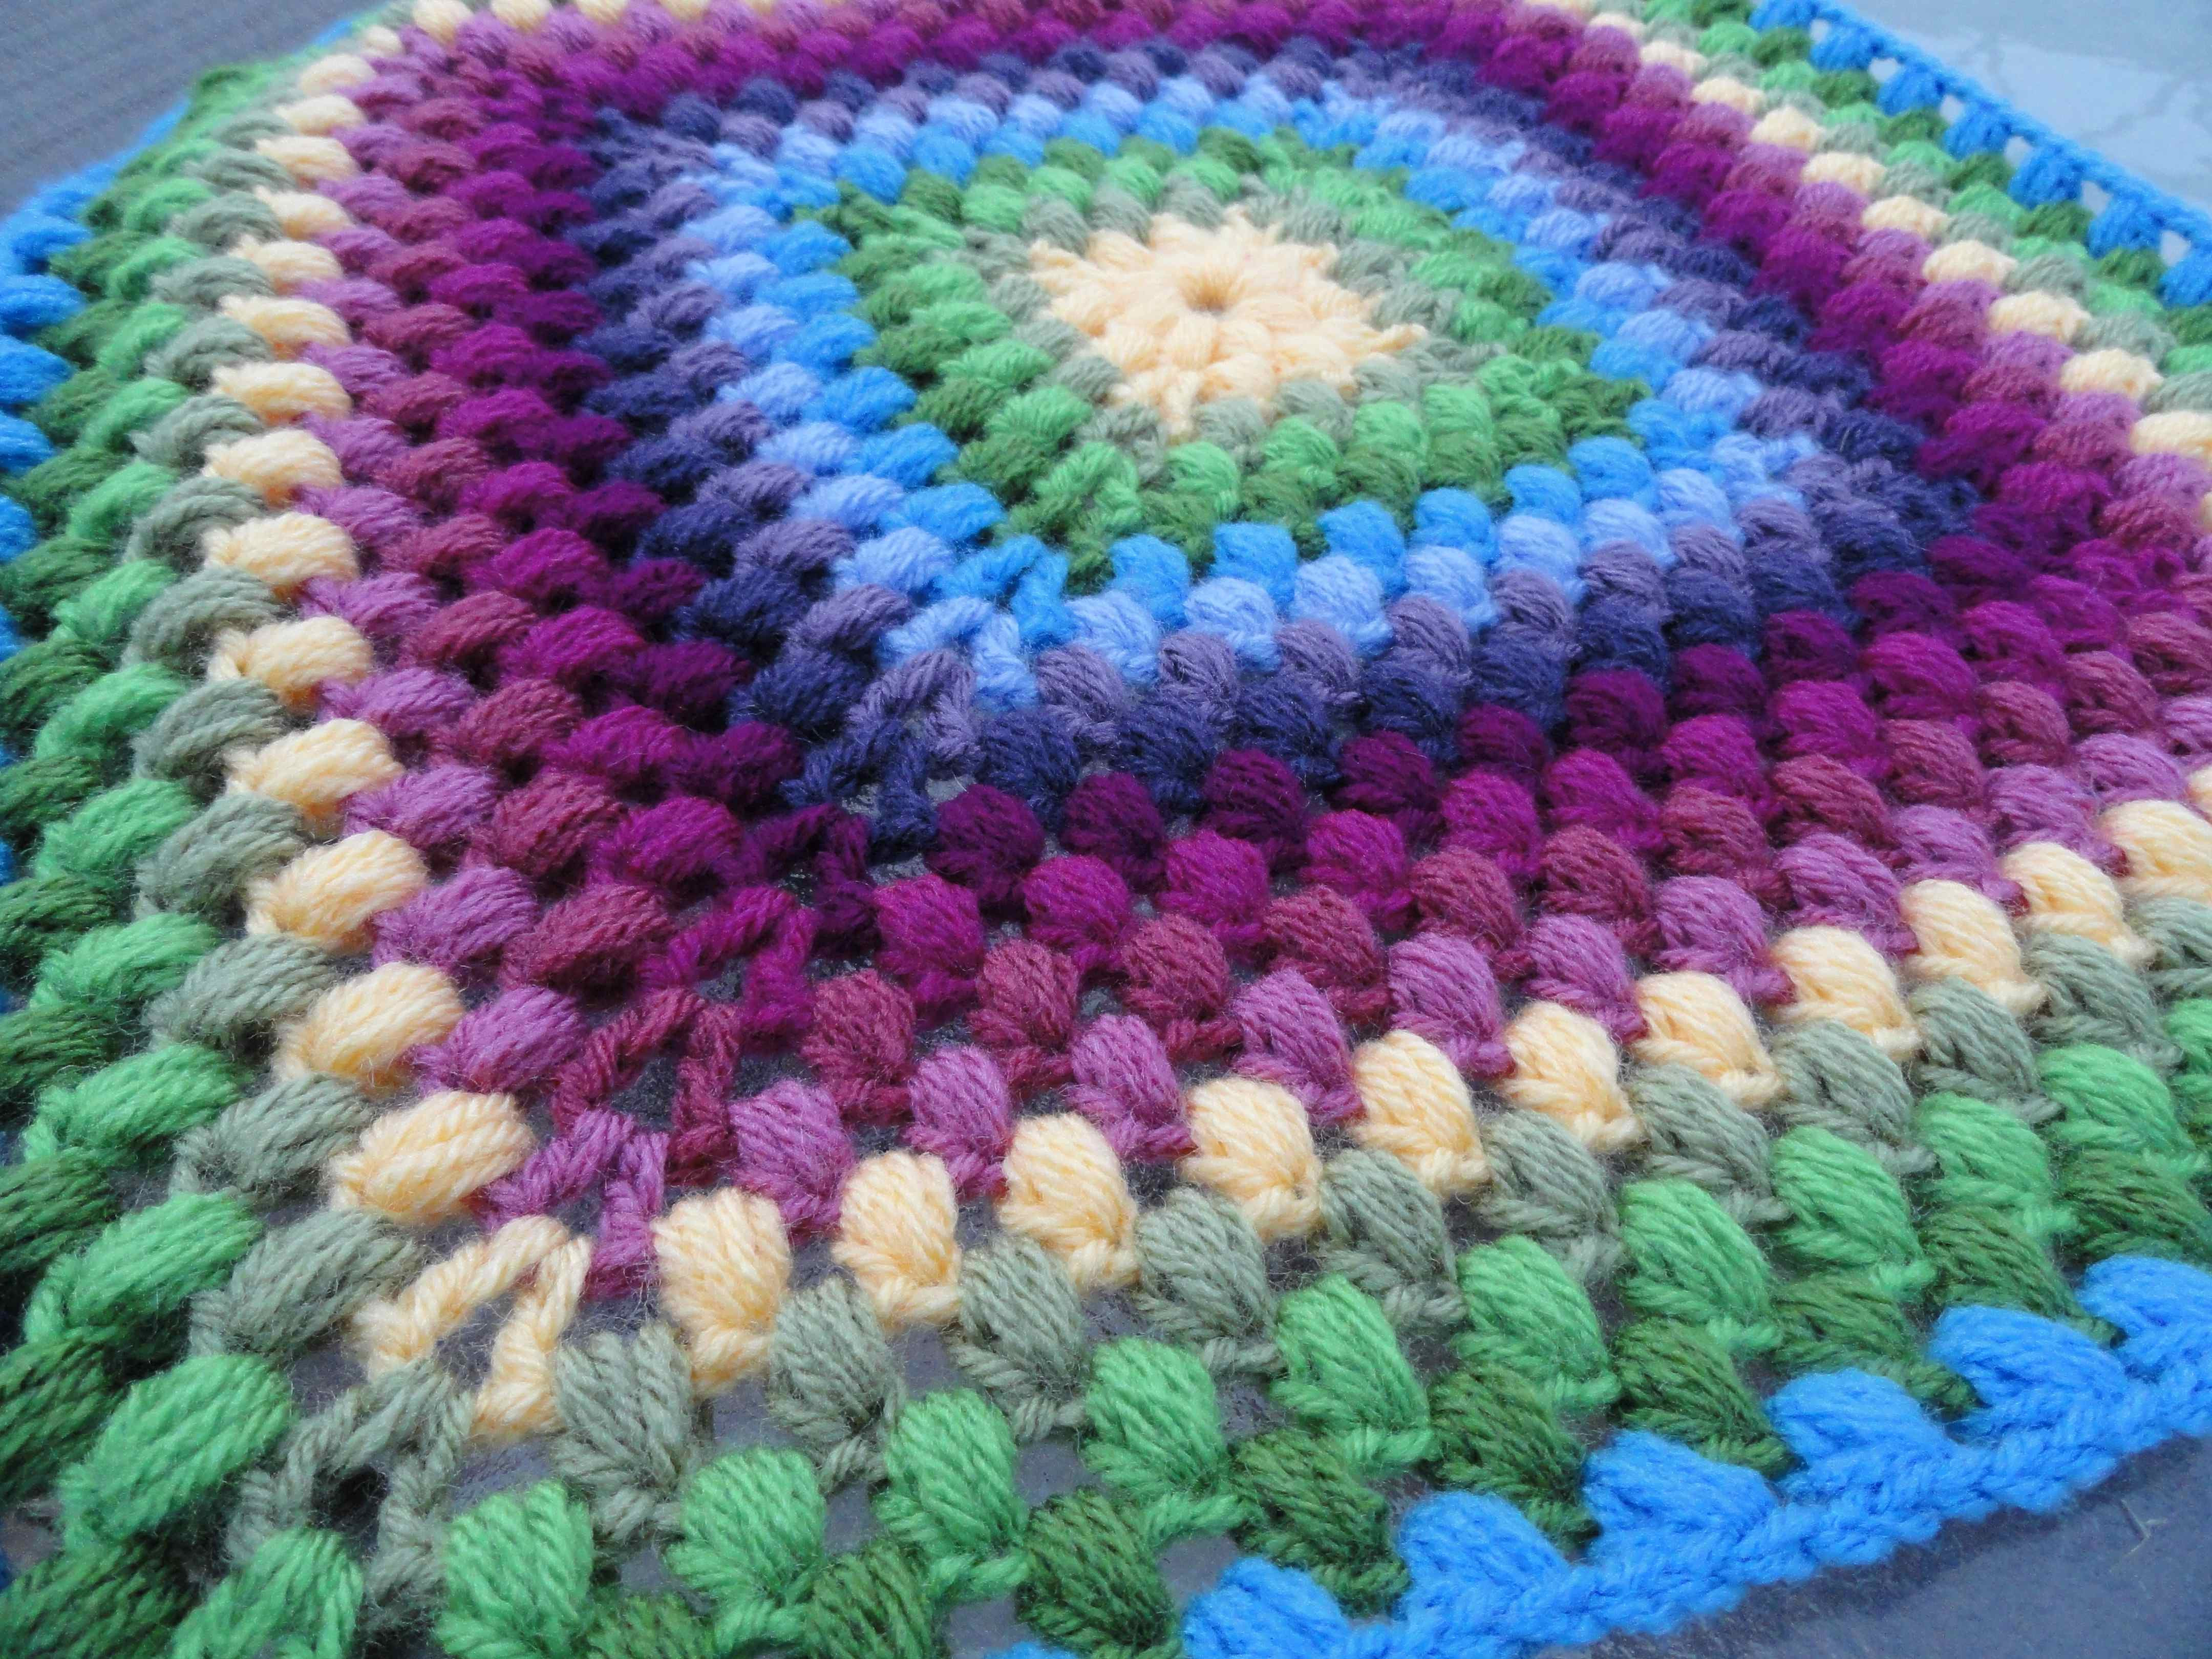 Granny Square Fresh Crochet Hawaiian Granny Square Pattern – Yarnchick Of Gorgeous 45 Photos Granny Square